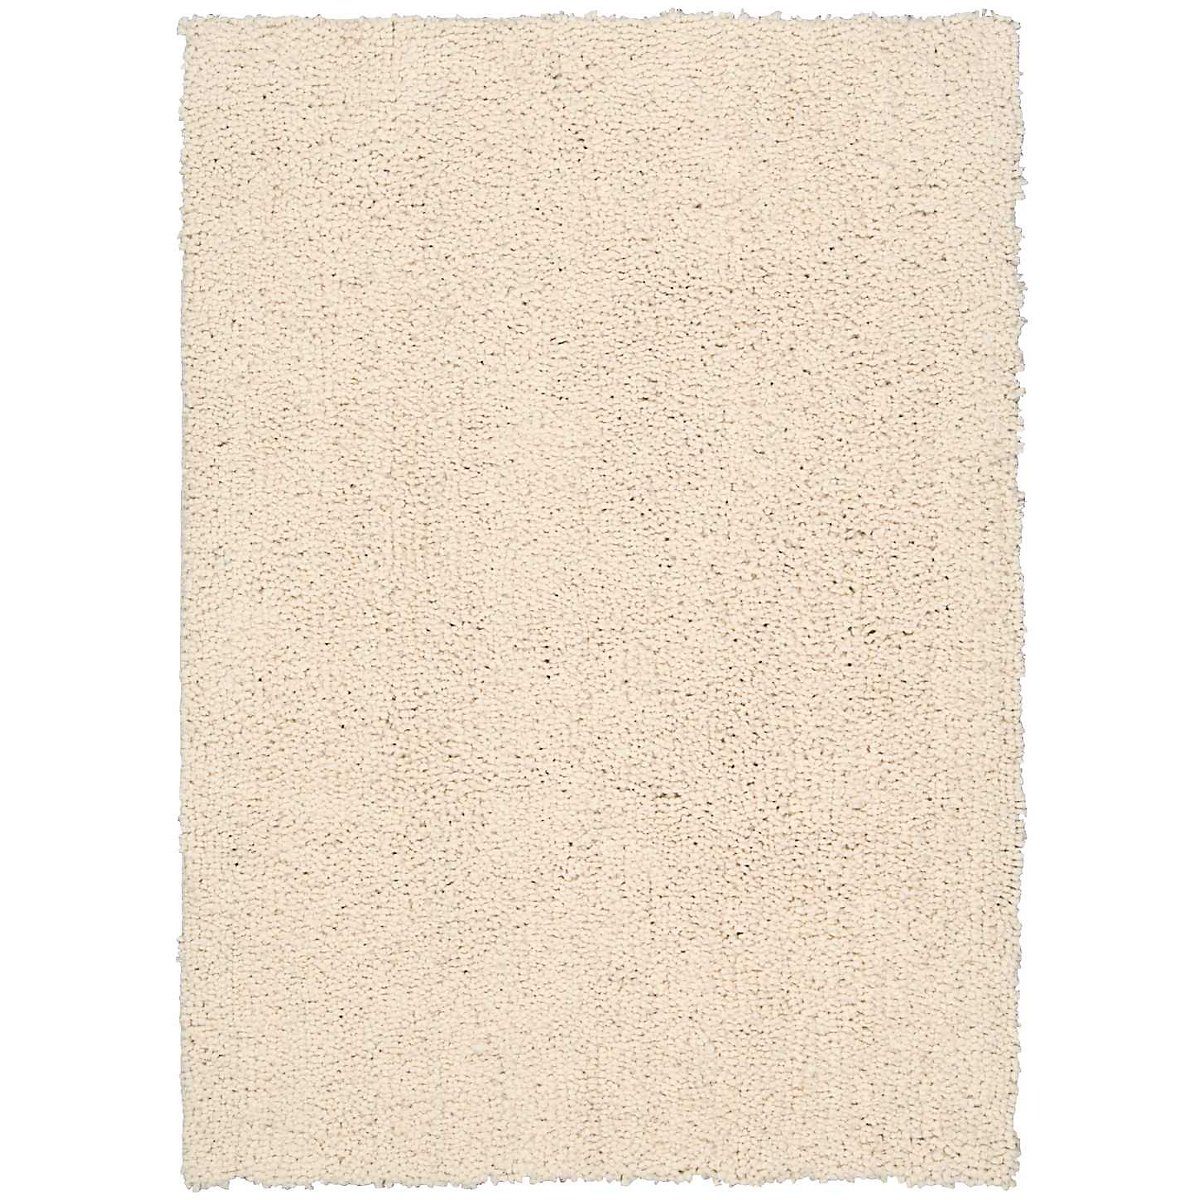 Puli Light Beige 8X10 Area Rug